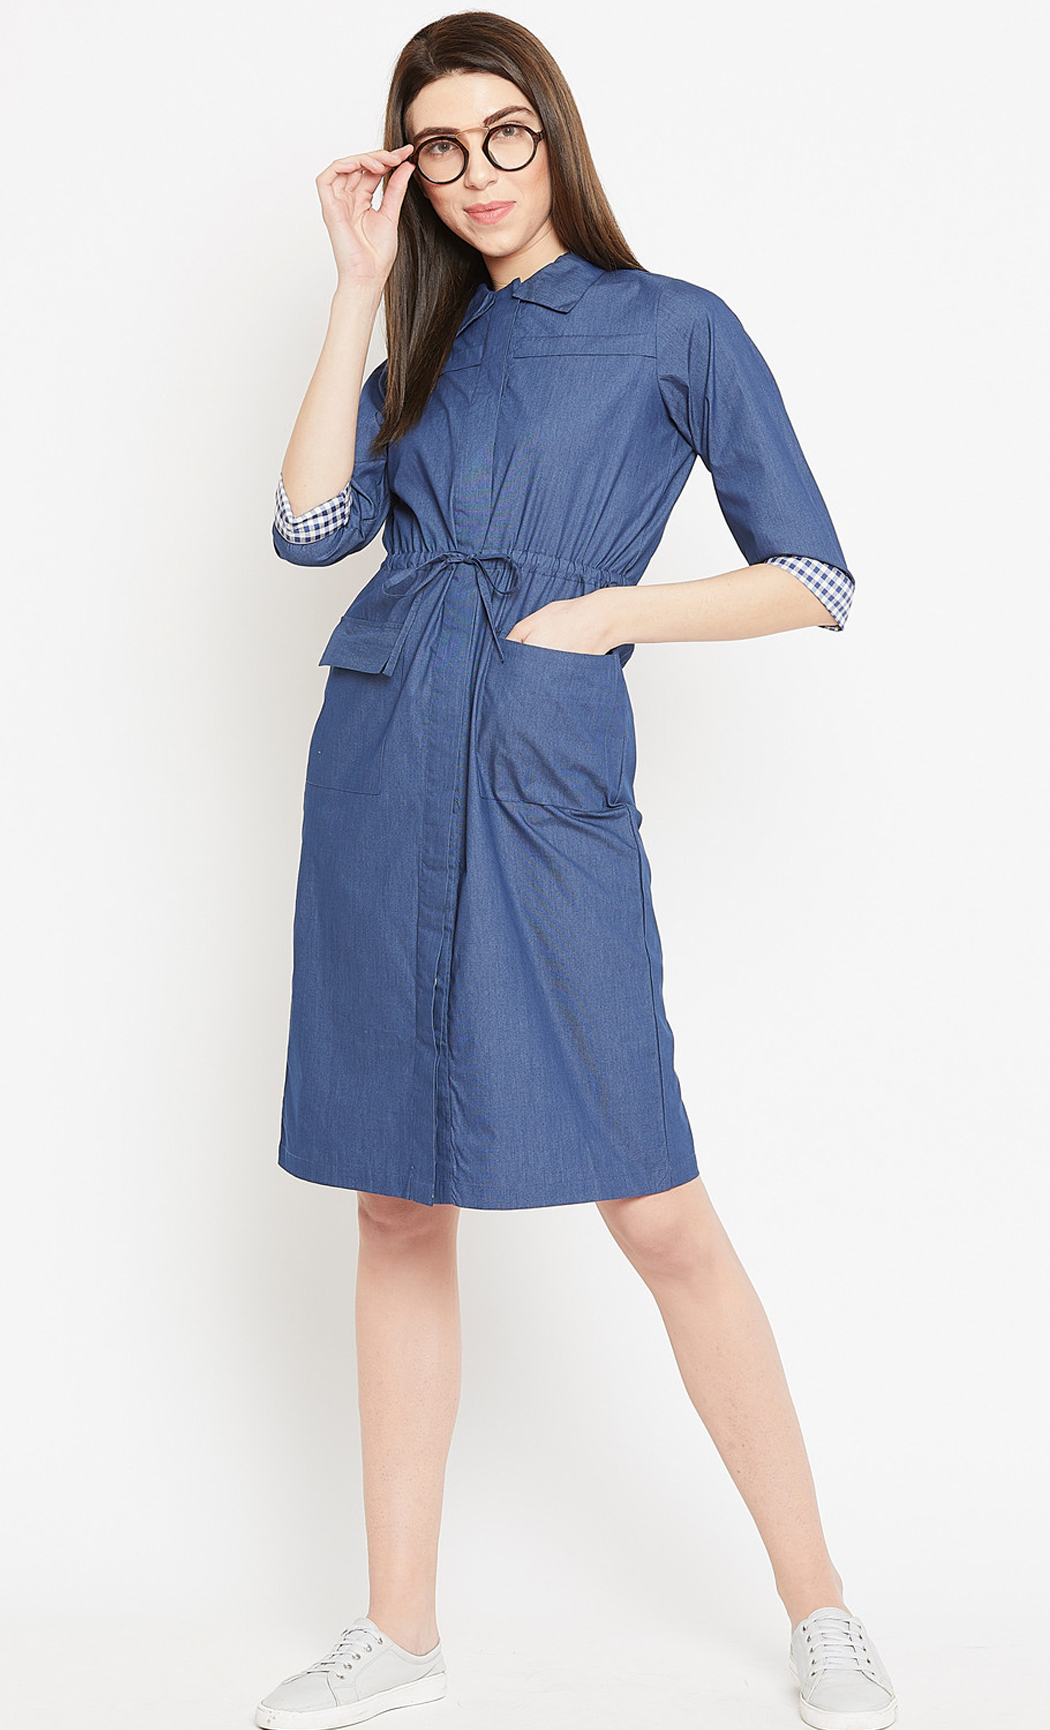 Blue Work It Girl Periwinkle Shirt Dress. Buy Online